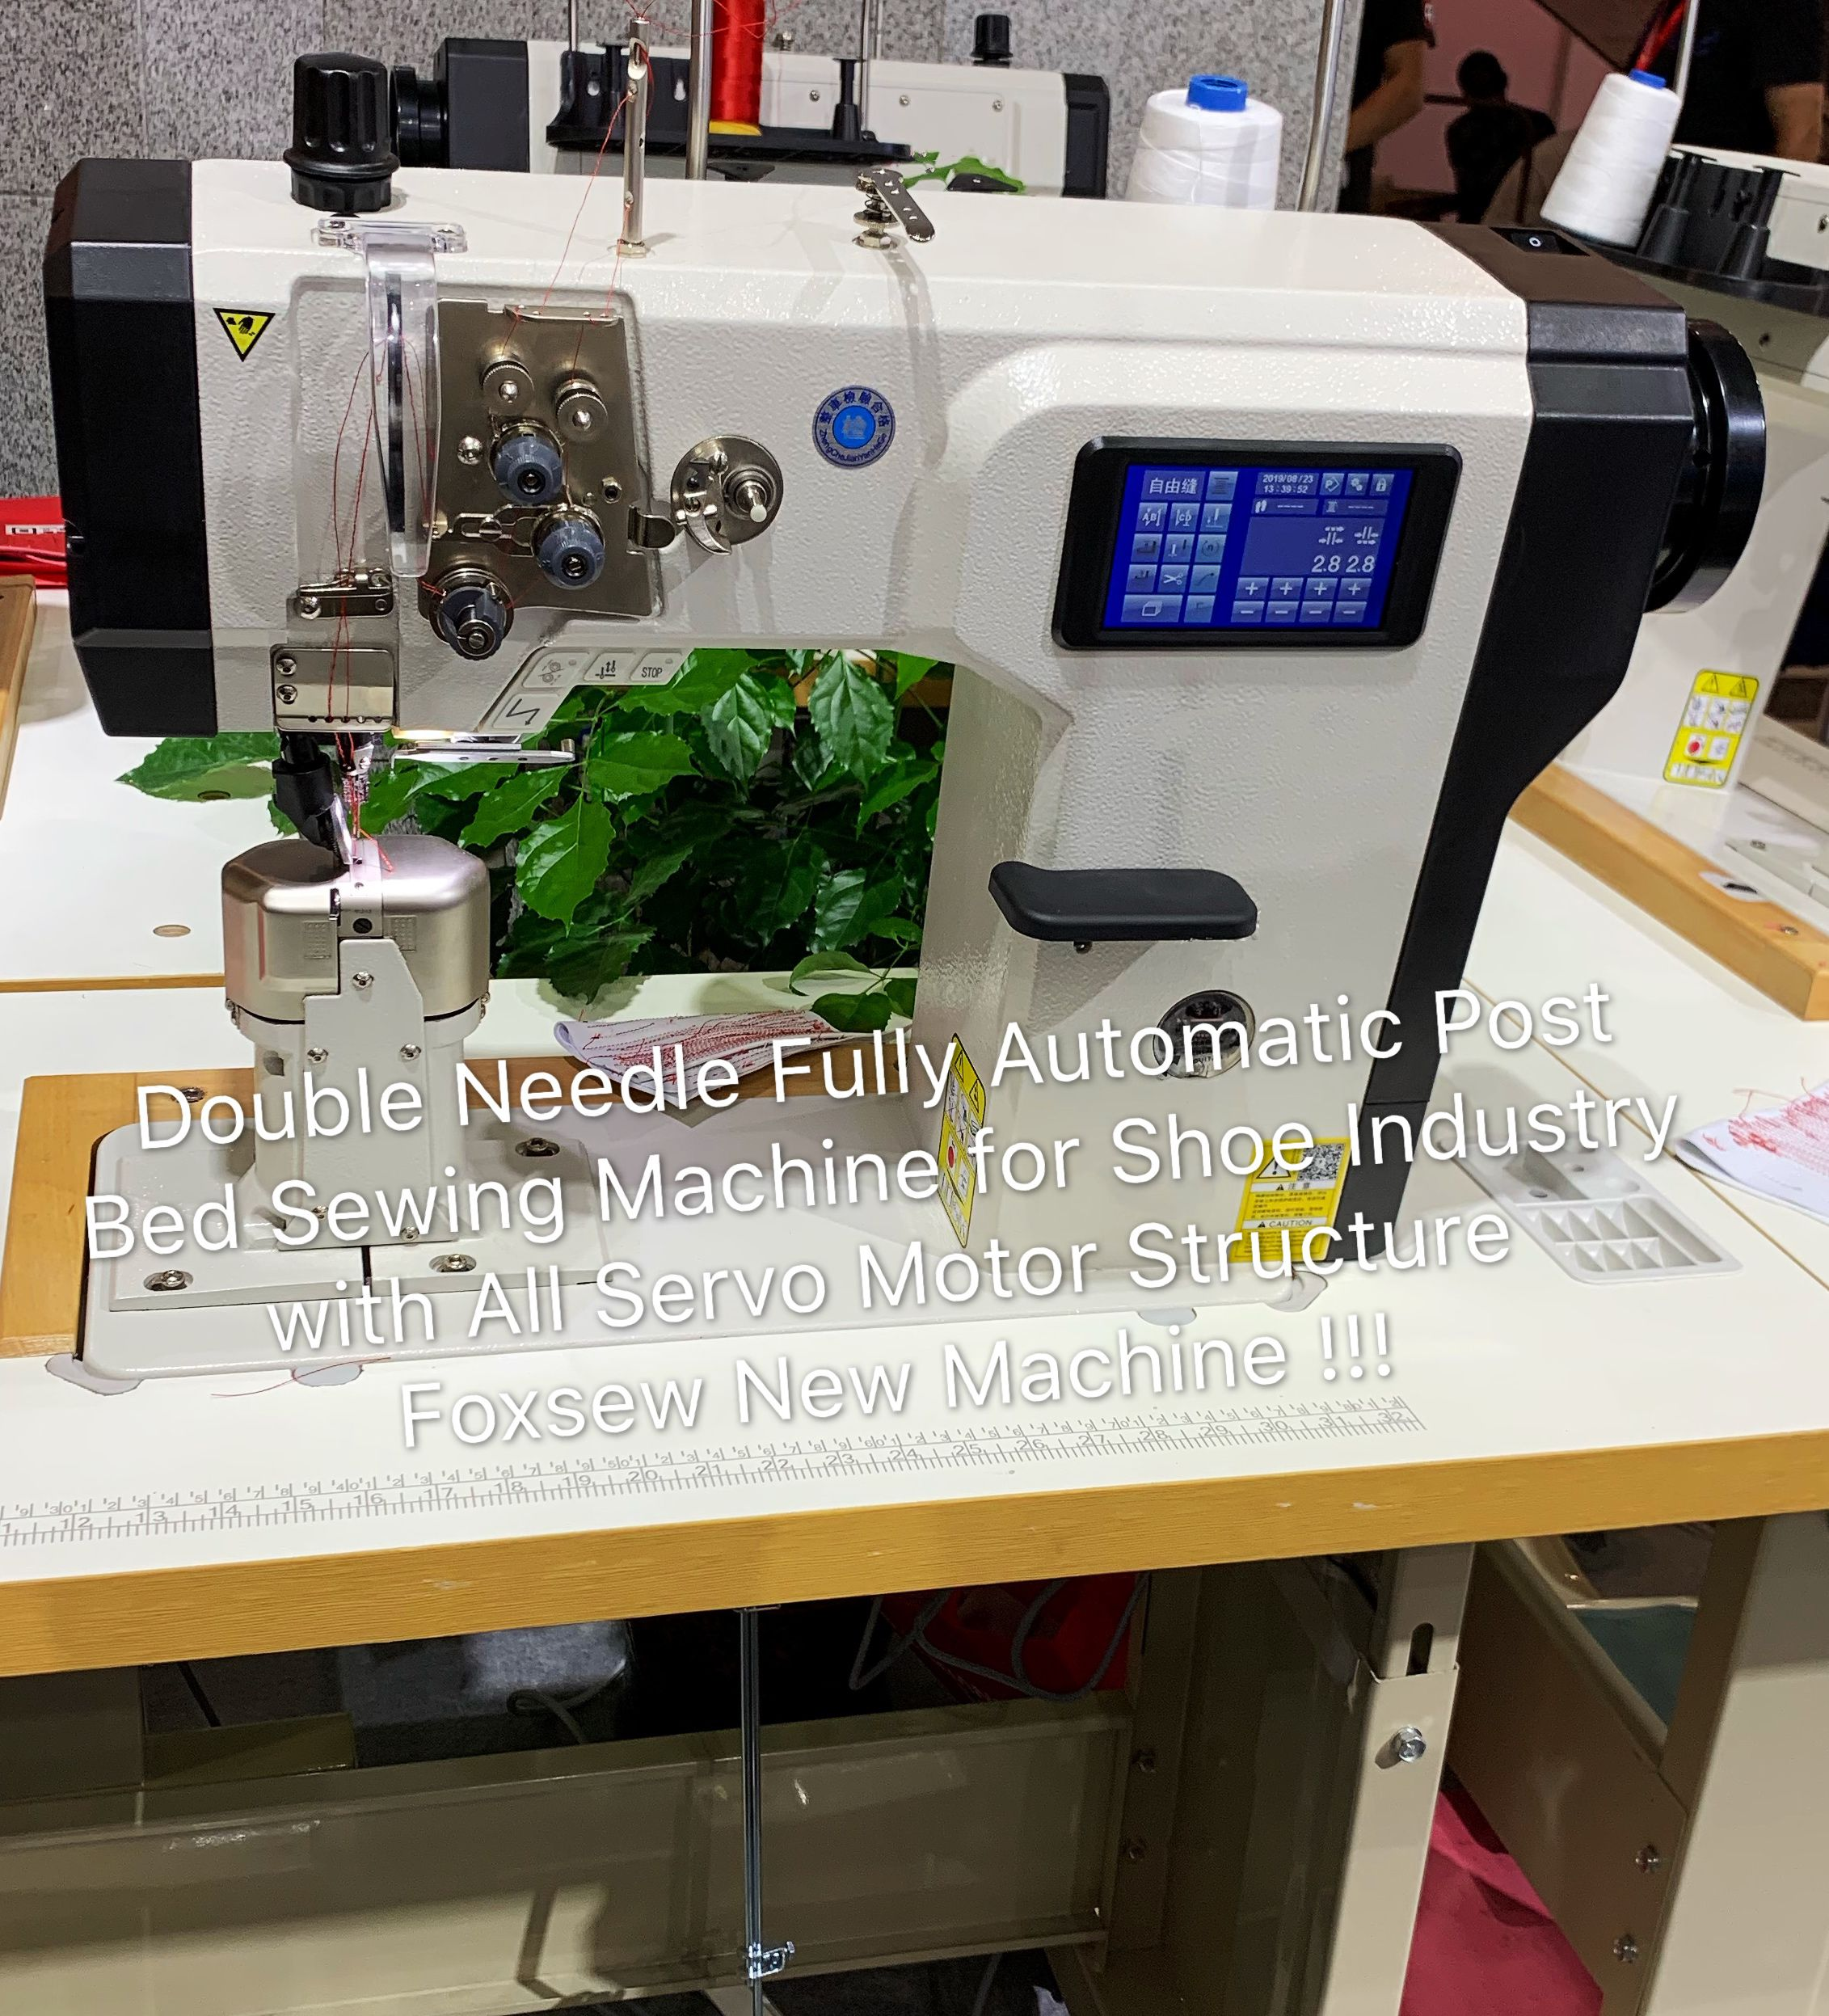 Double Needle Fully Automatic Post Bed Sewing Machine for Shoes Industry With all Servo Motor Strcture FOXSEW FX1892